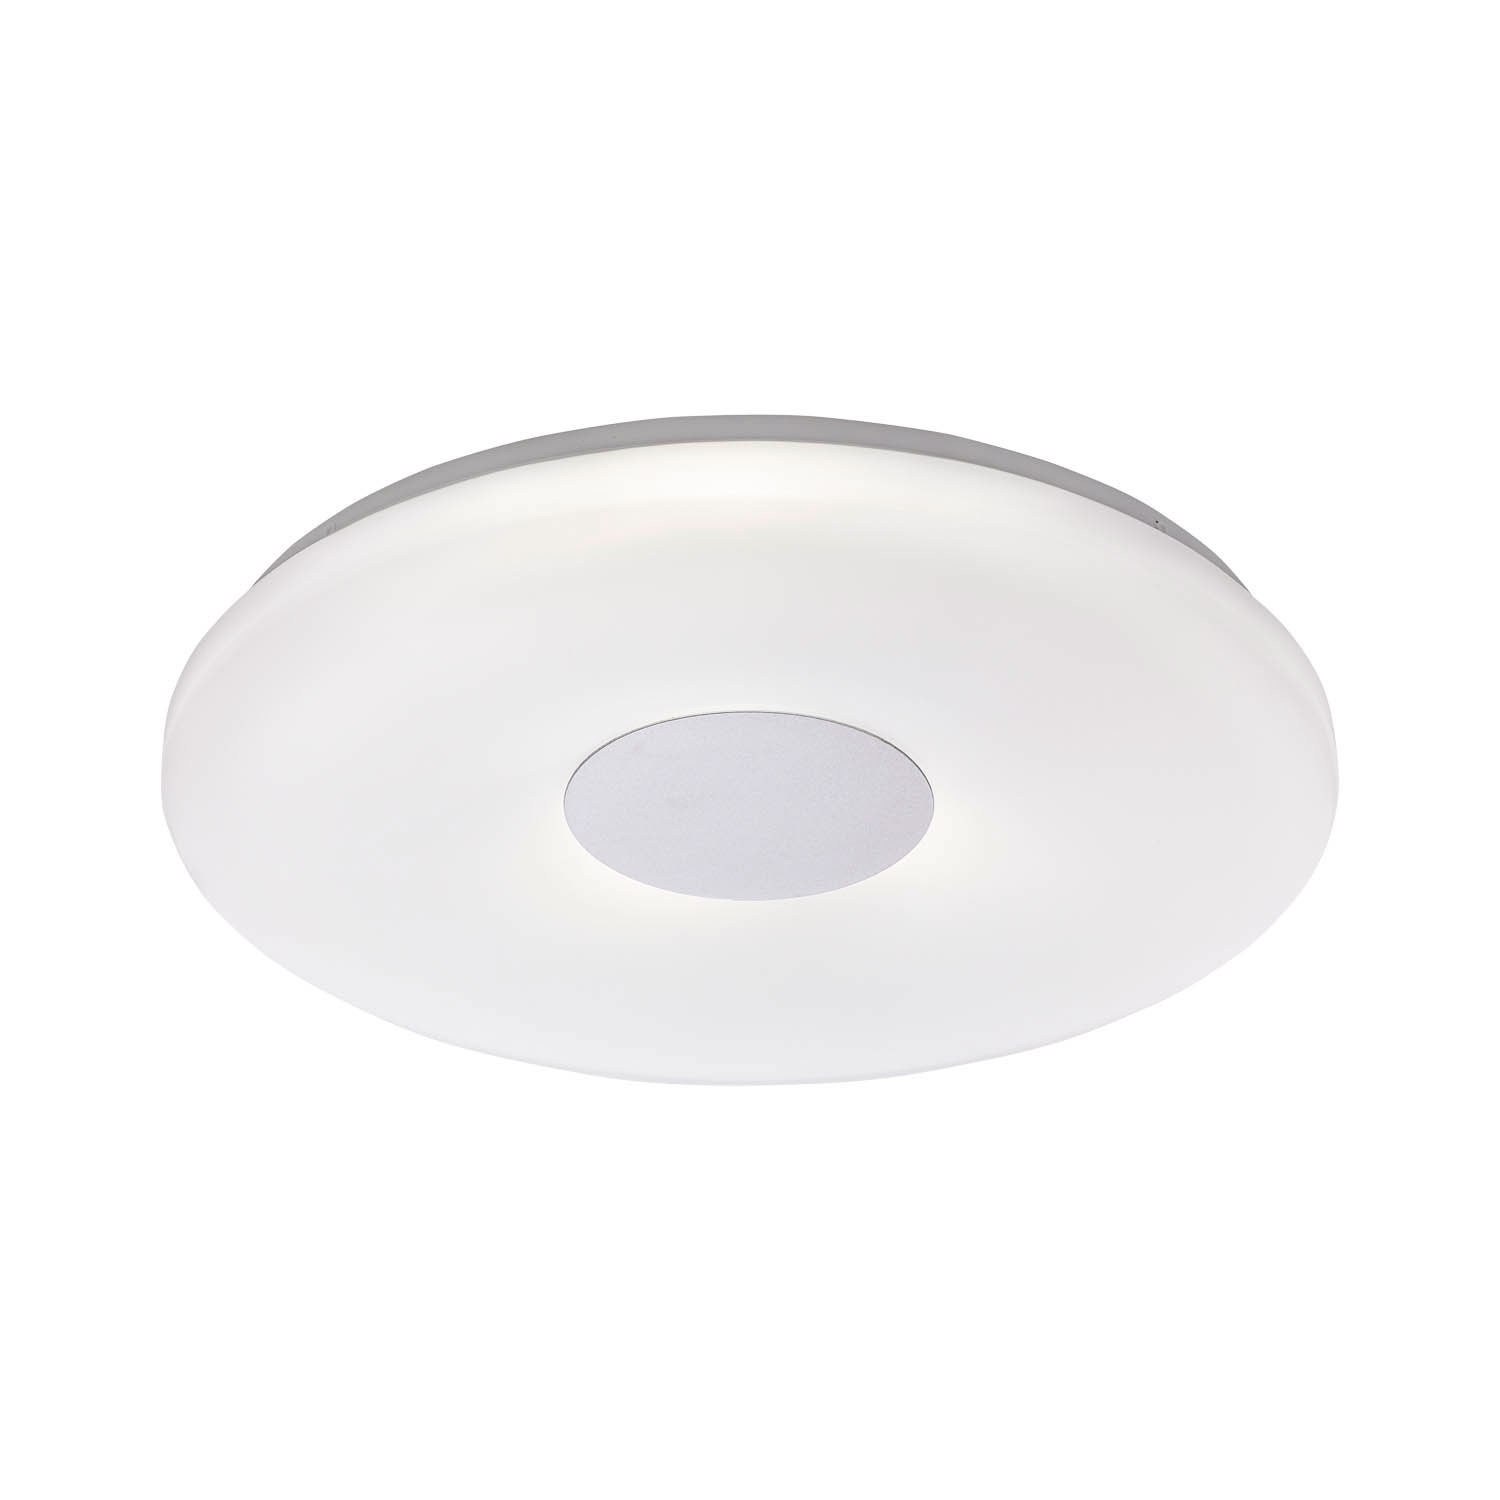 Plaf n led circle 24w 4000k acr lico - Plafon led techo ...